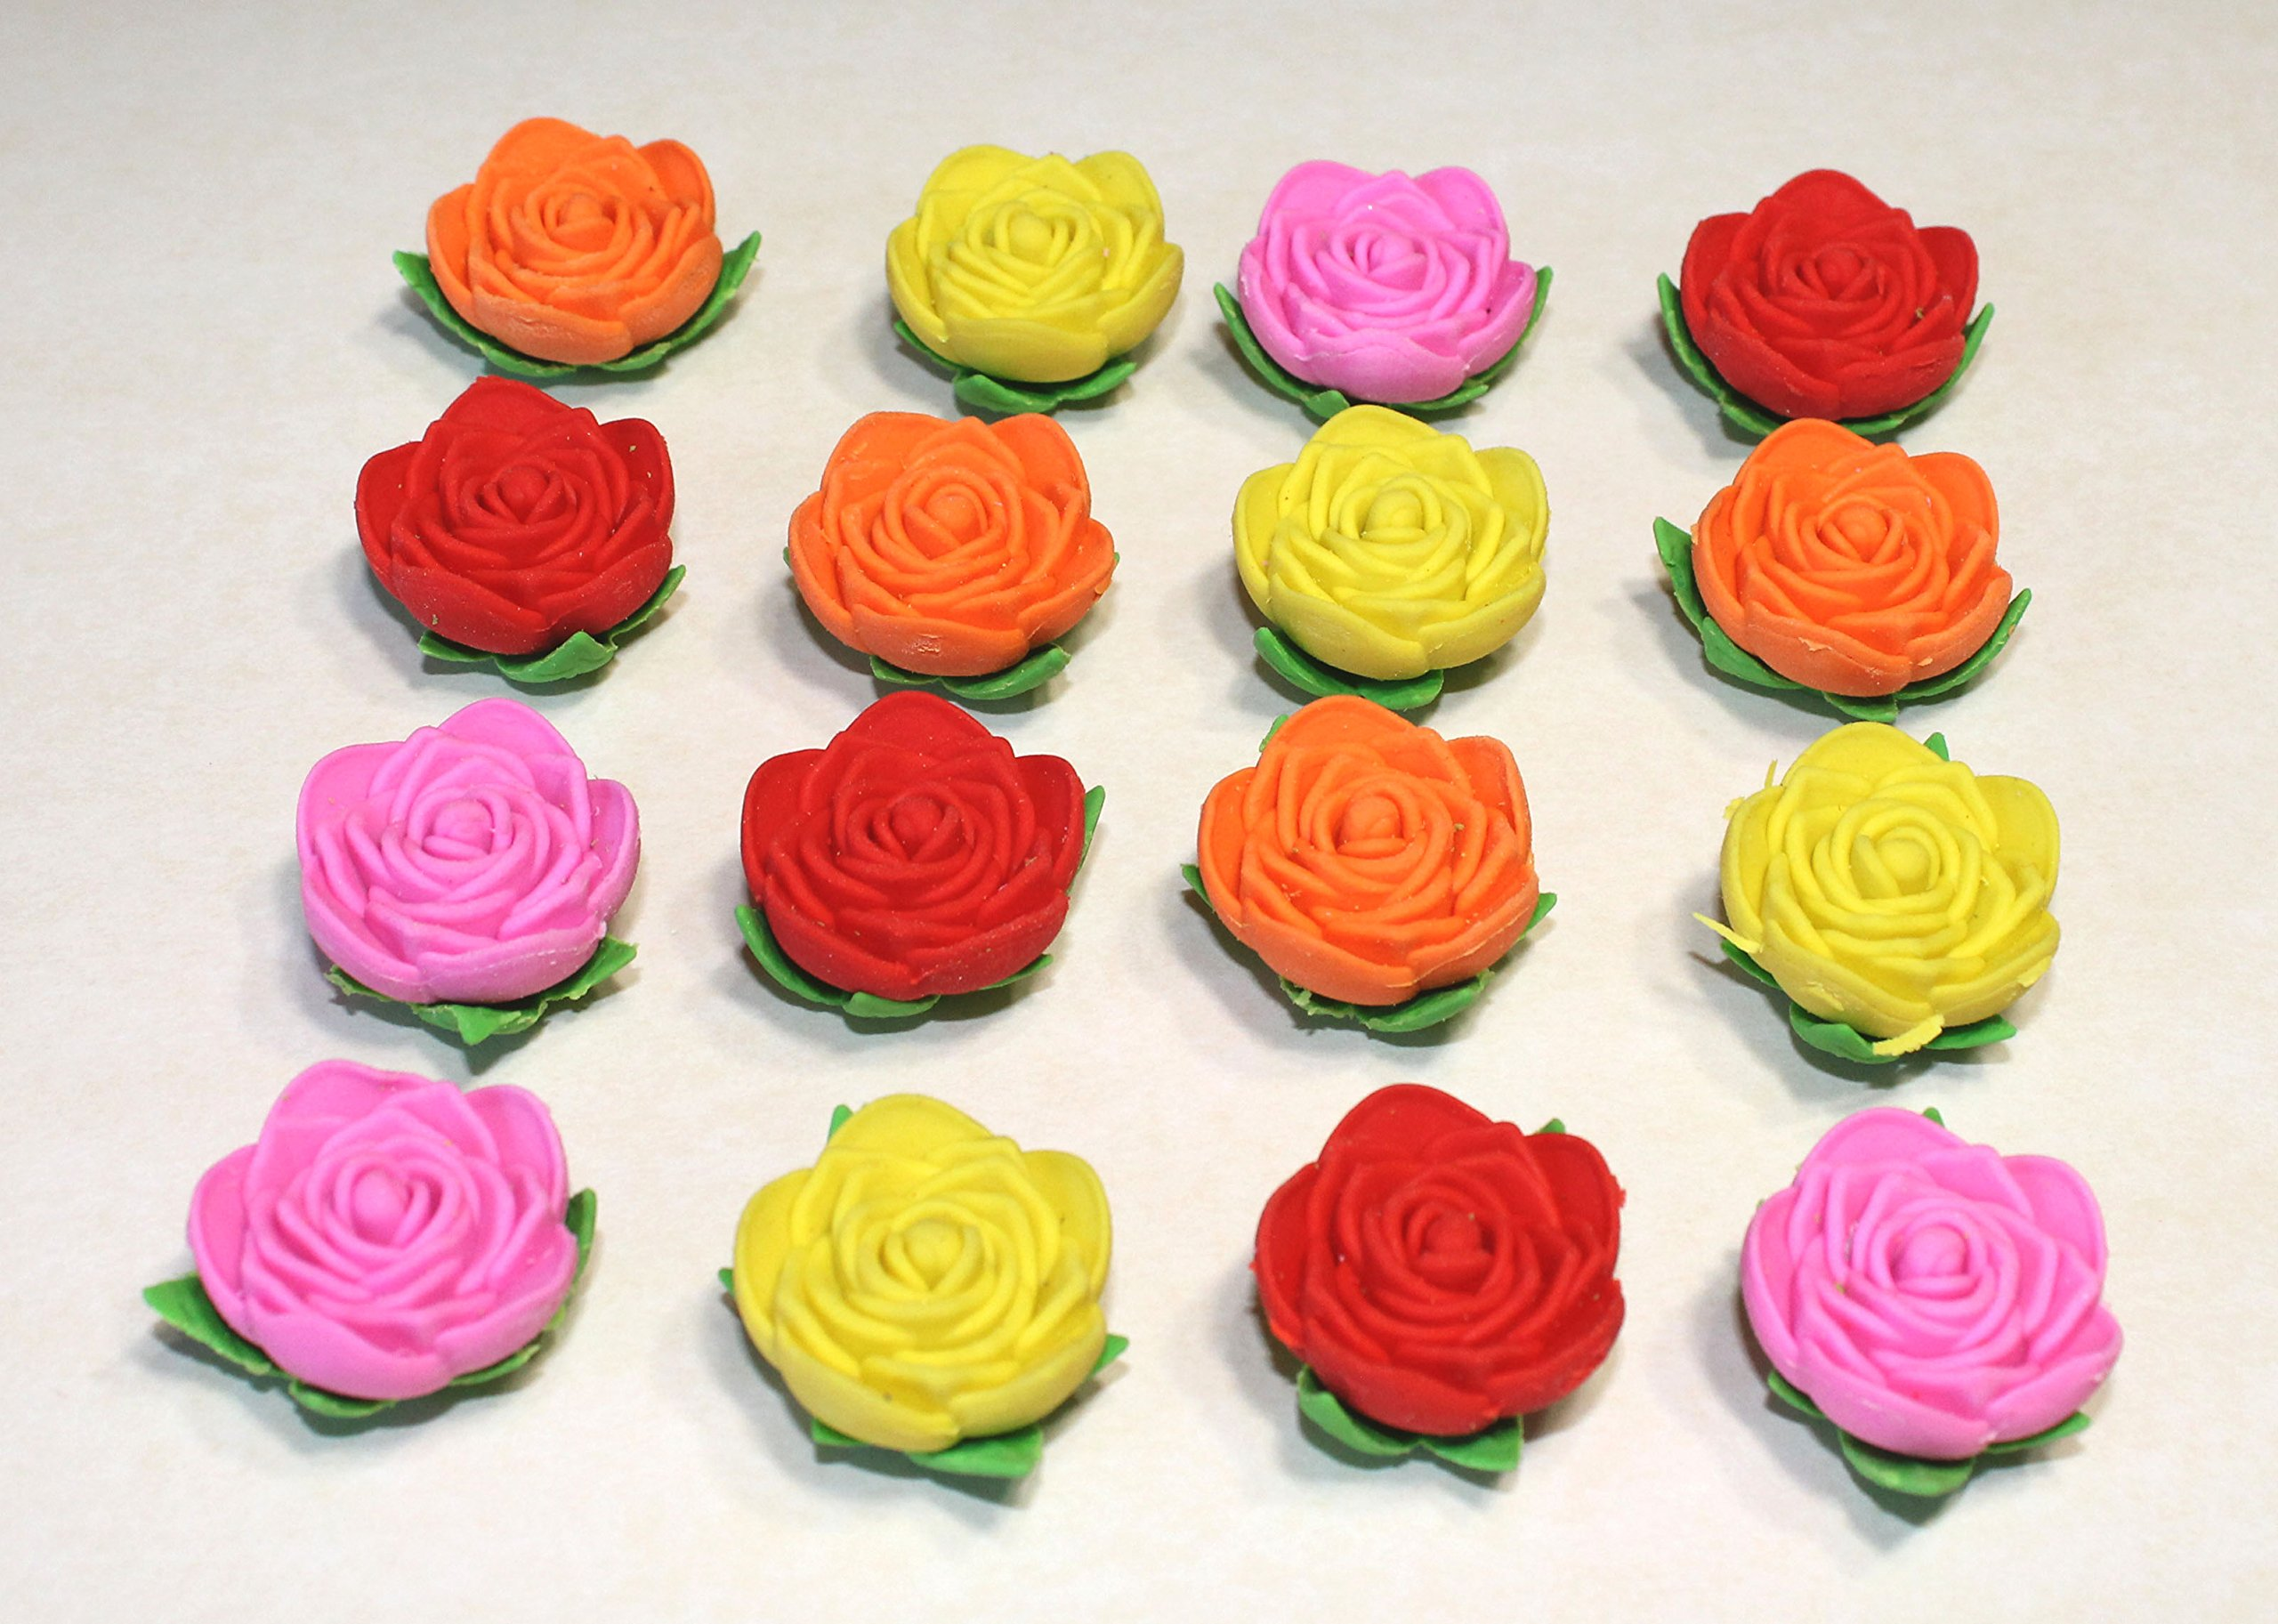 Lucore Rose Pencil Top Erasers - 16 pcs Colorful Flower Shaped Kids Pen Cap Toppers by Lucore Home (Image #2)